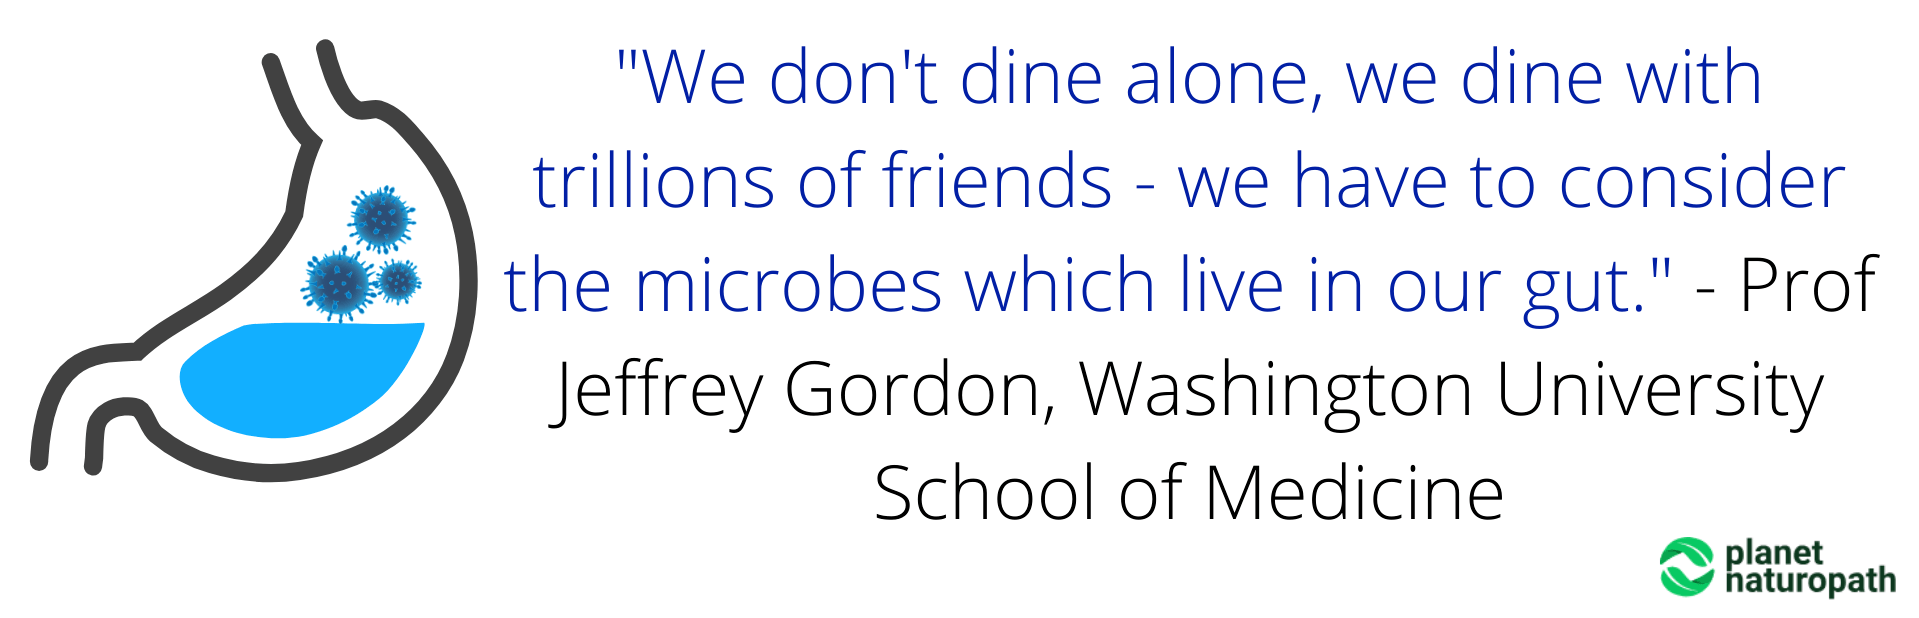 We-dont-dine-alone-we-dine-with-trillions-of-friends-we-have-to-consider-the-microbes-which-live-in-our-gut